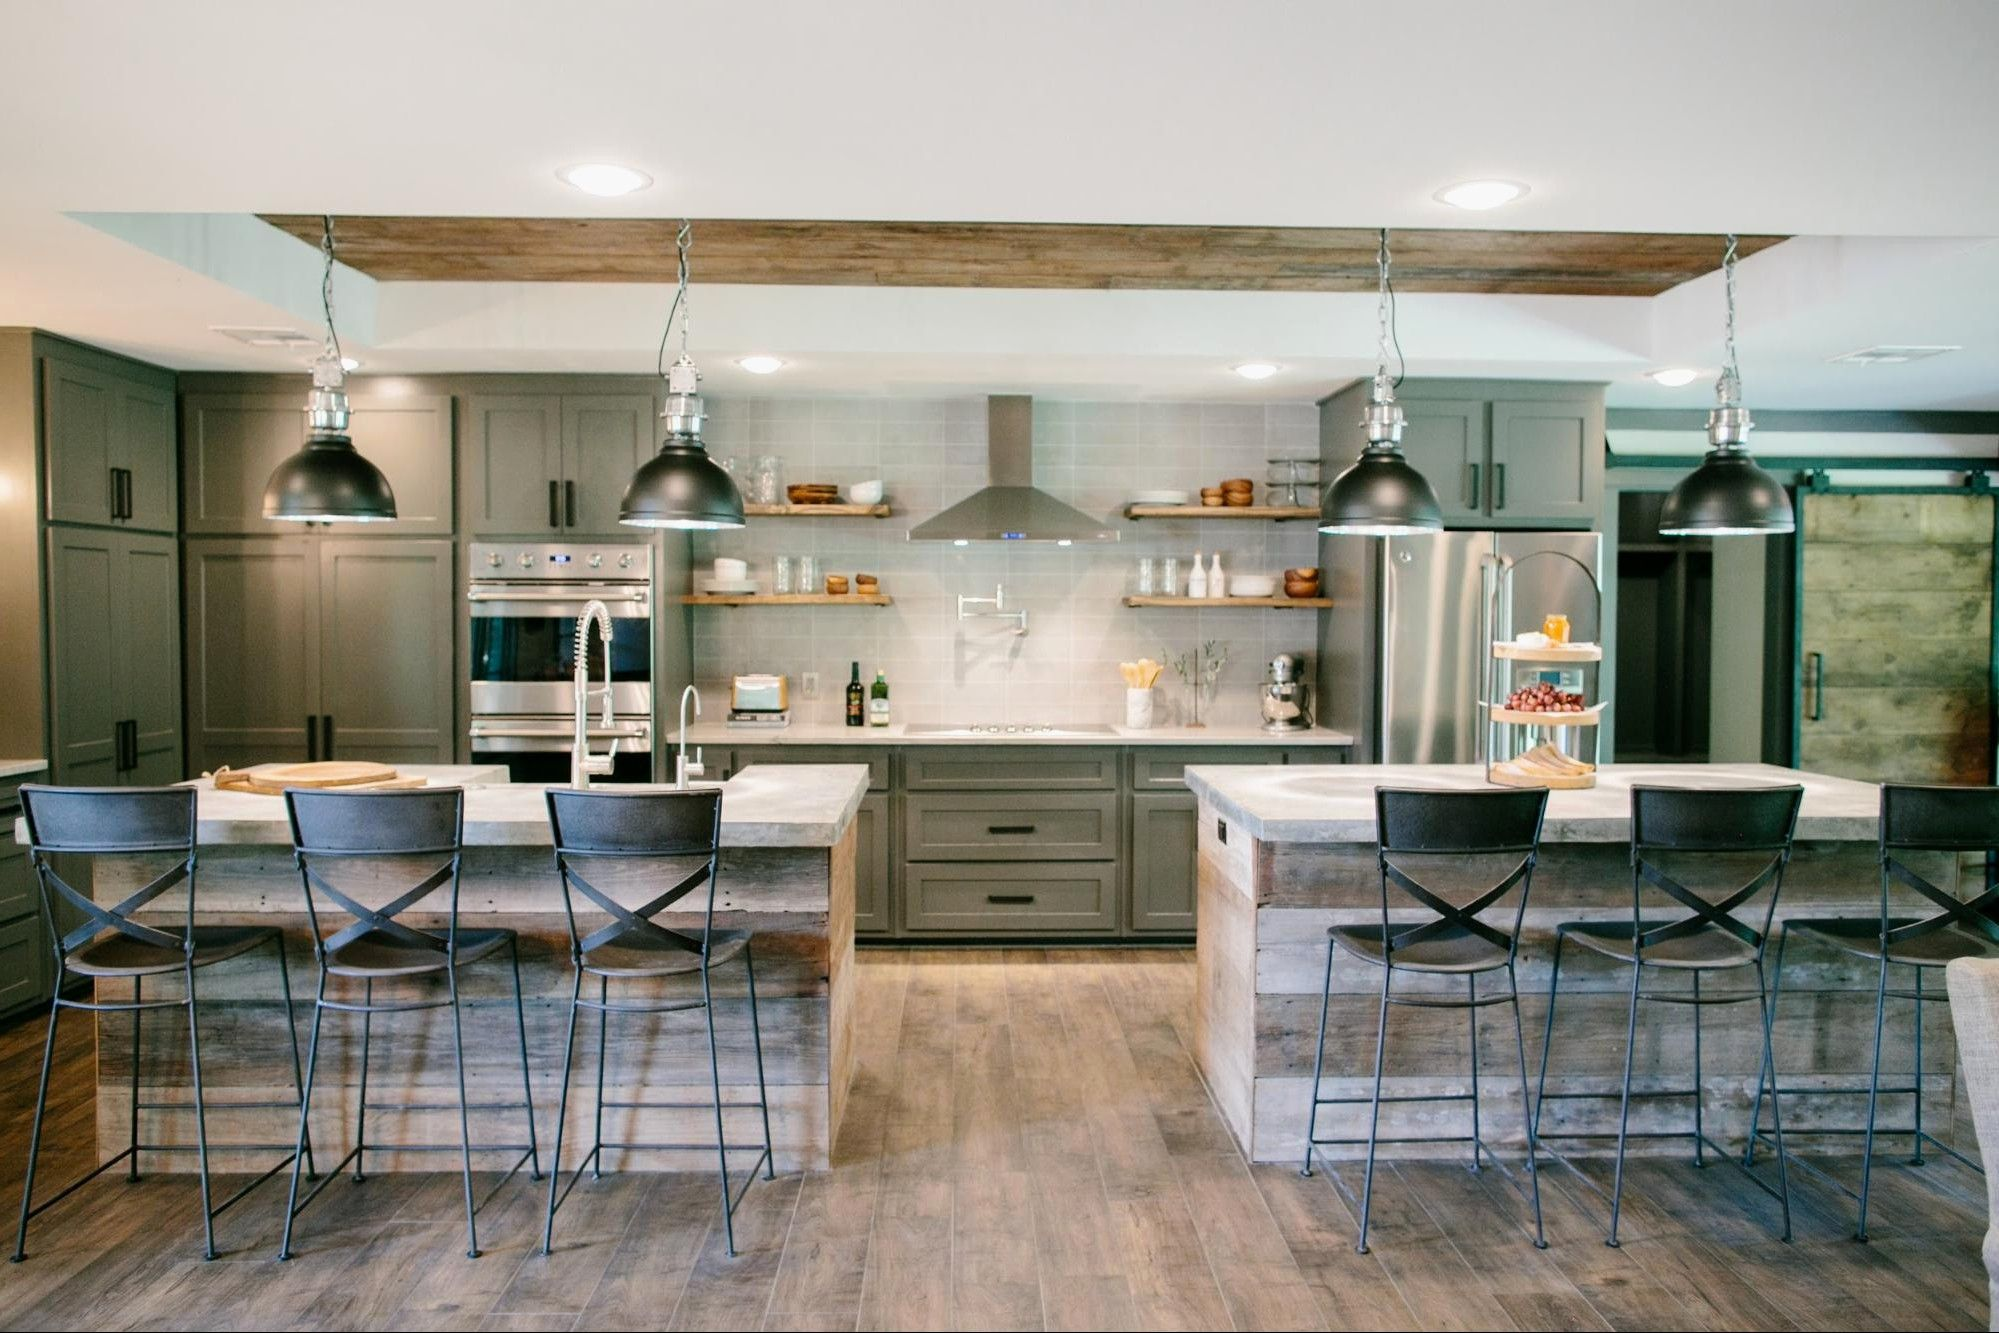 awesome two islands in kitchen gl kitchen design | Fixer upper ...